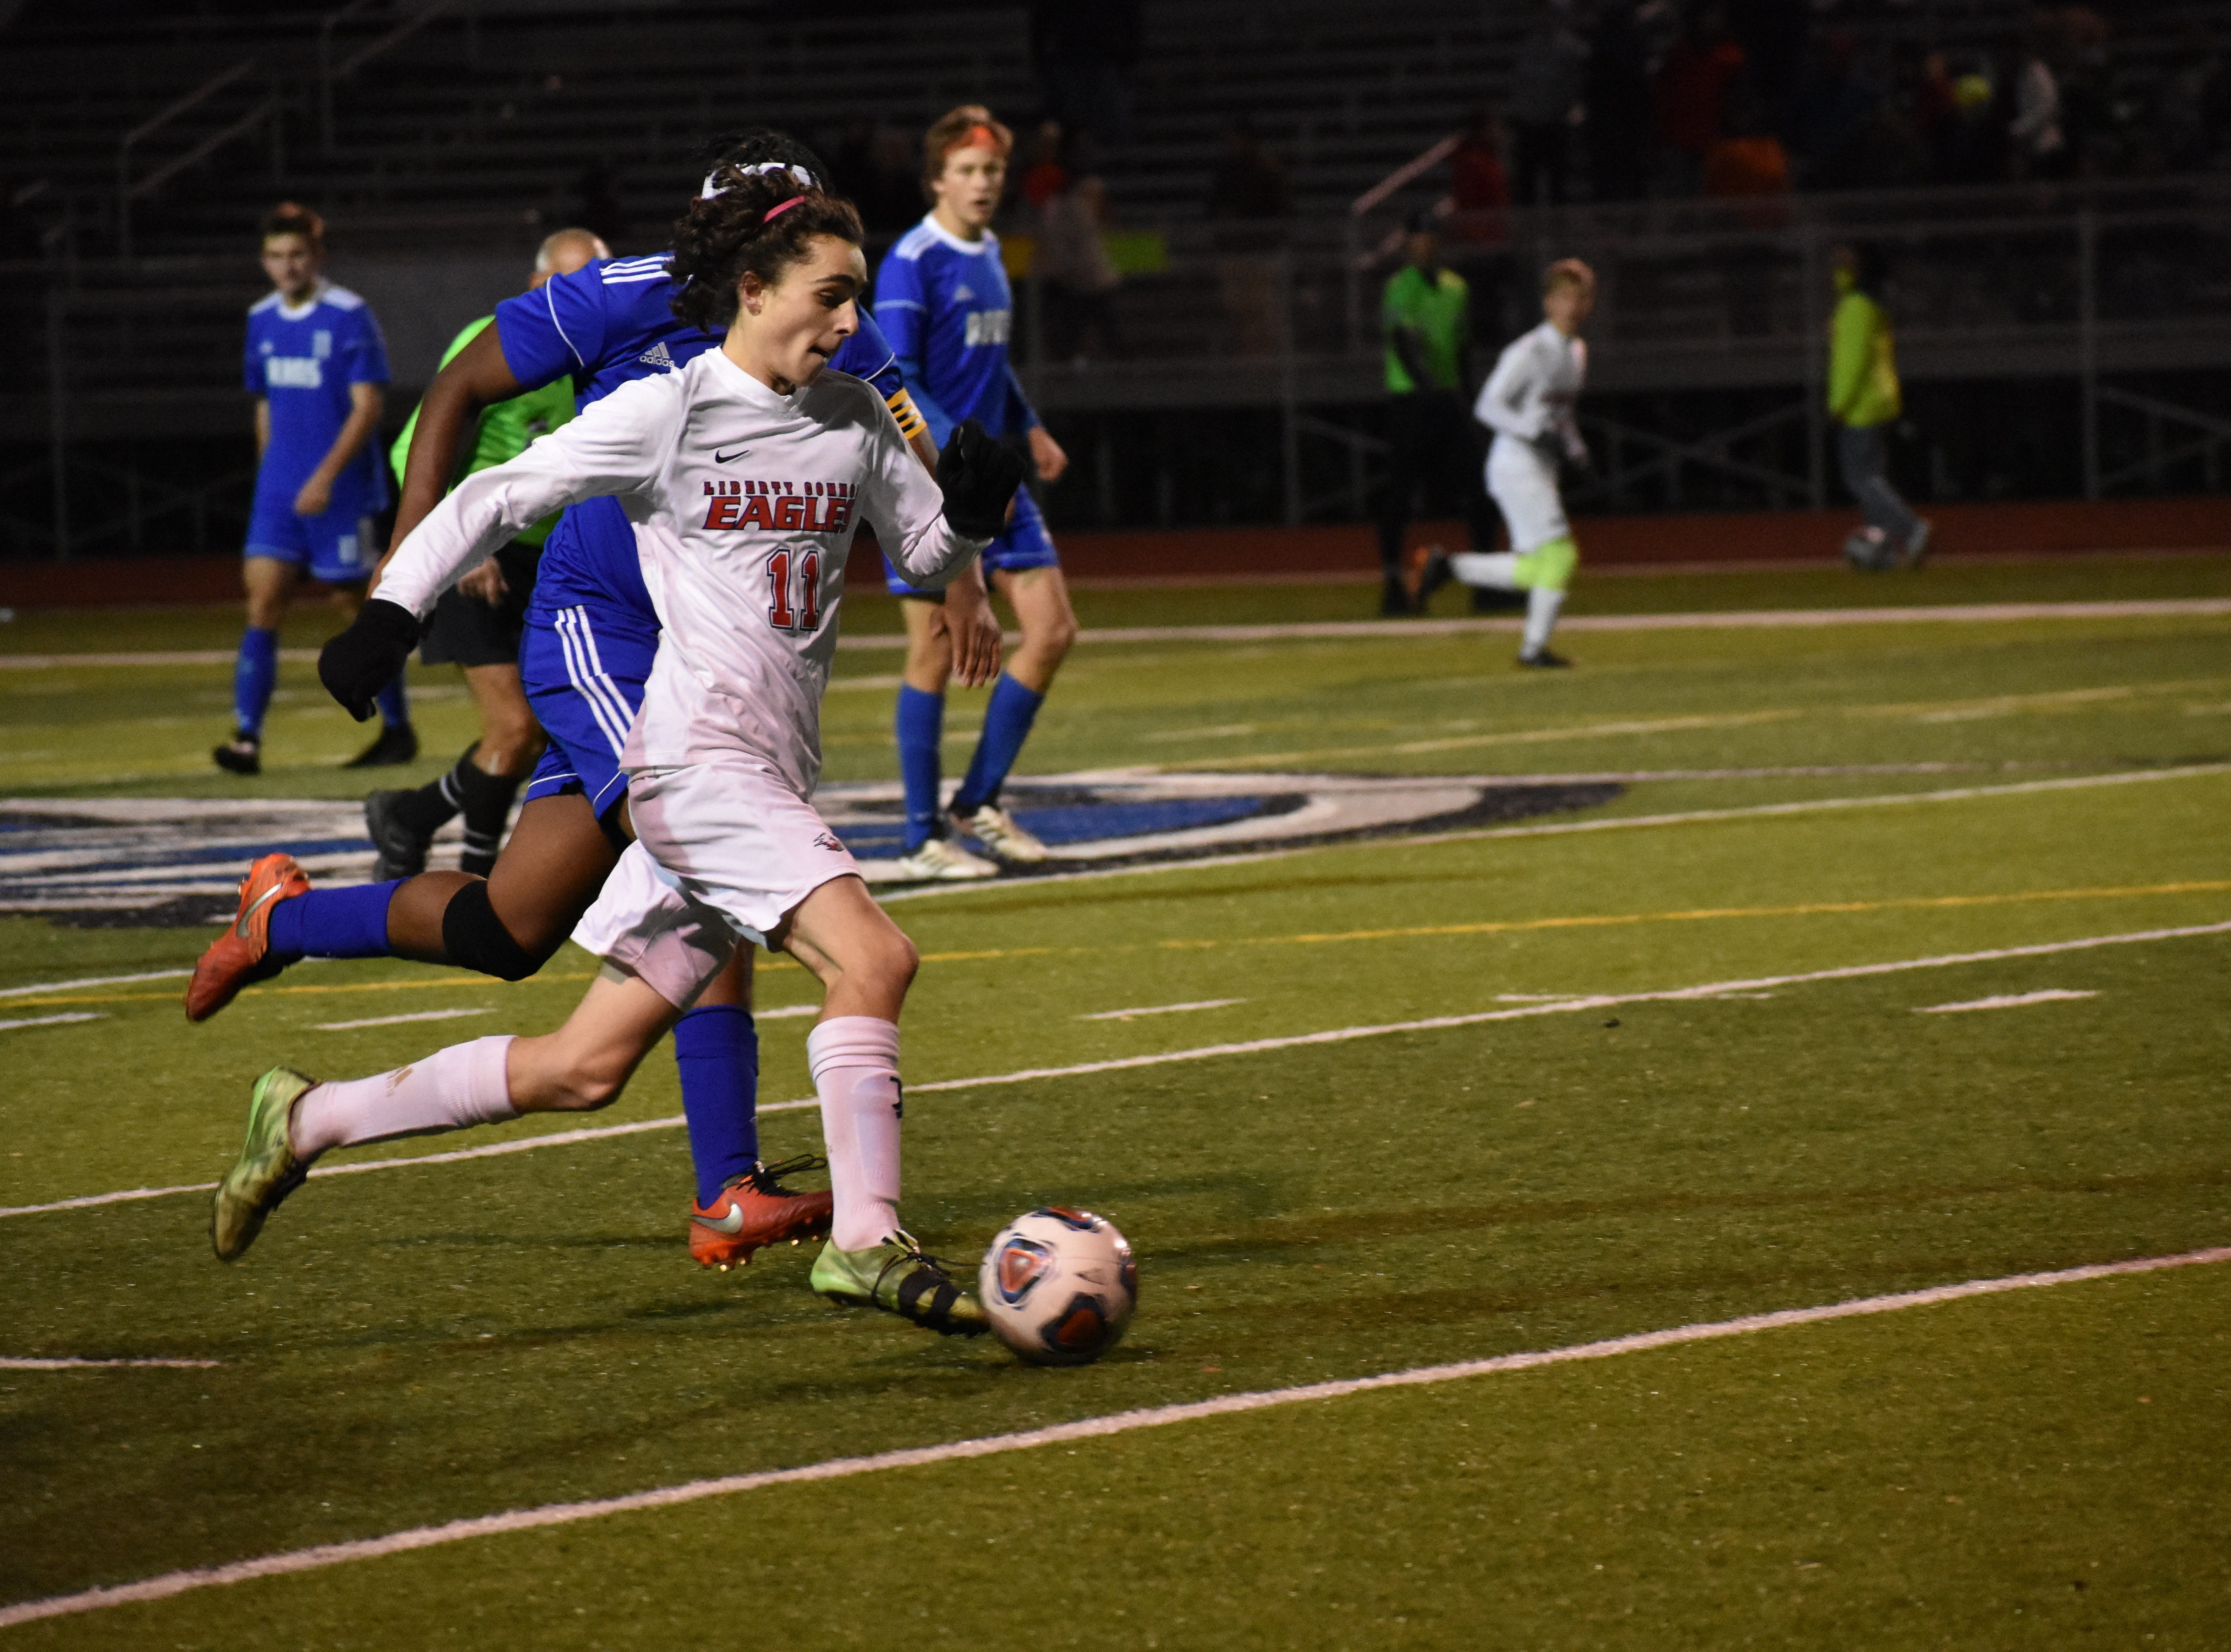 Liberty's Zach Harker dribbles past a defender during the Eagles' state semifinal win over Roaring Fork.